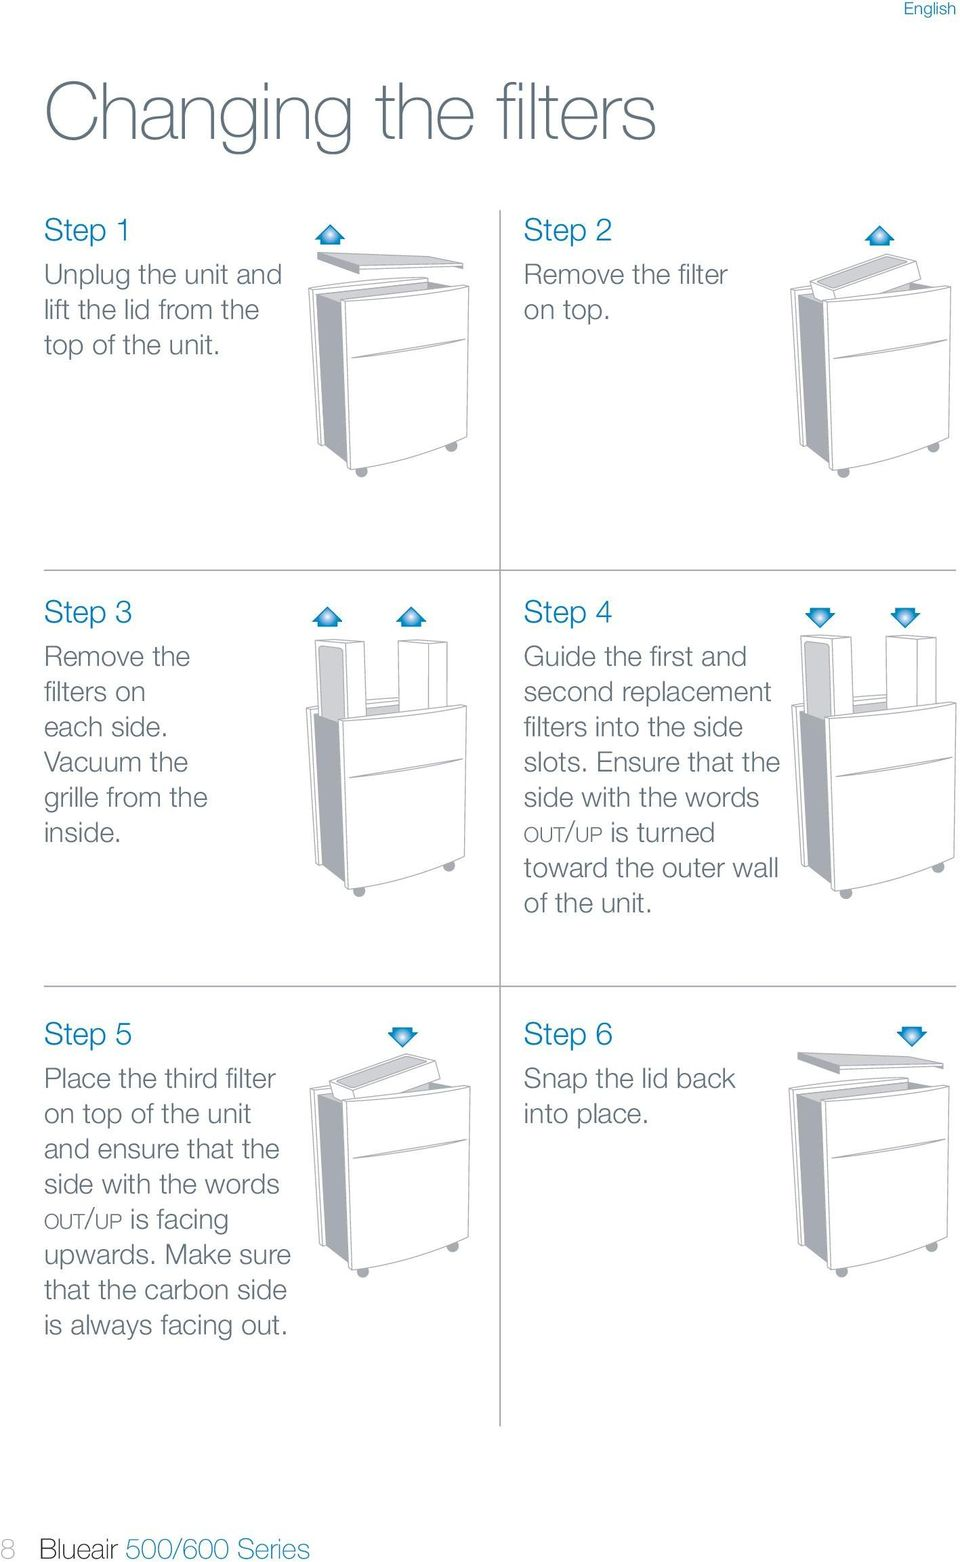 Ensure that the side with the words o u t/u p is turned toward the outer wall of the unit.